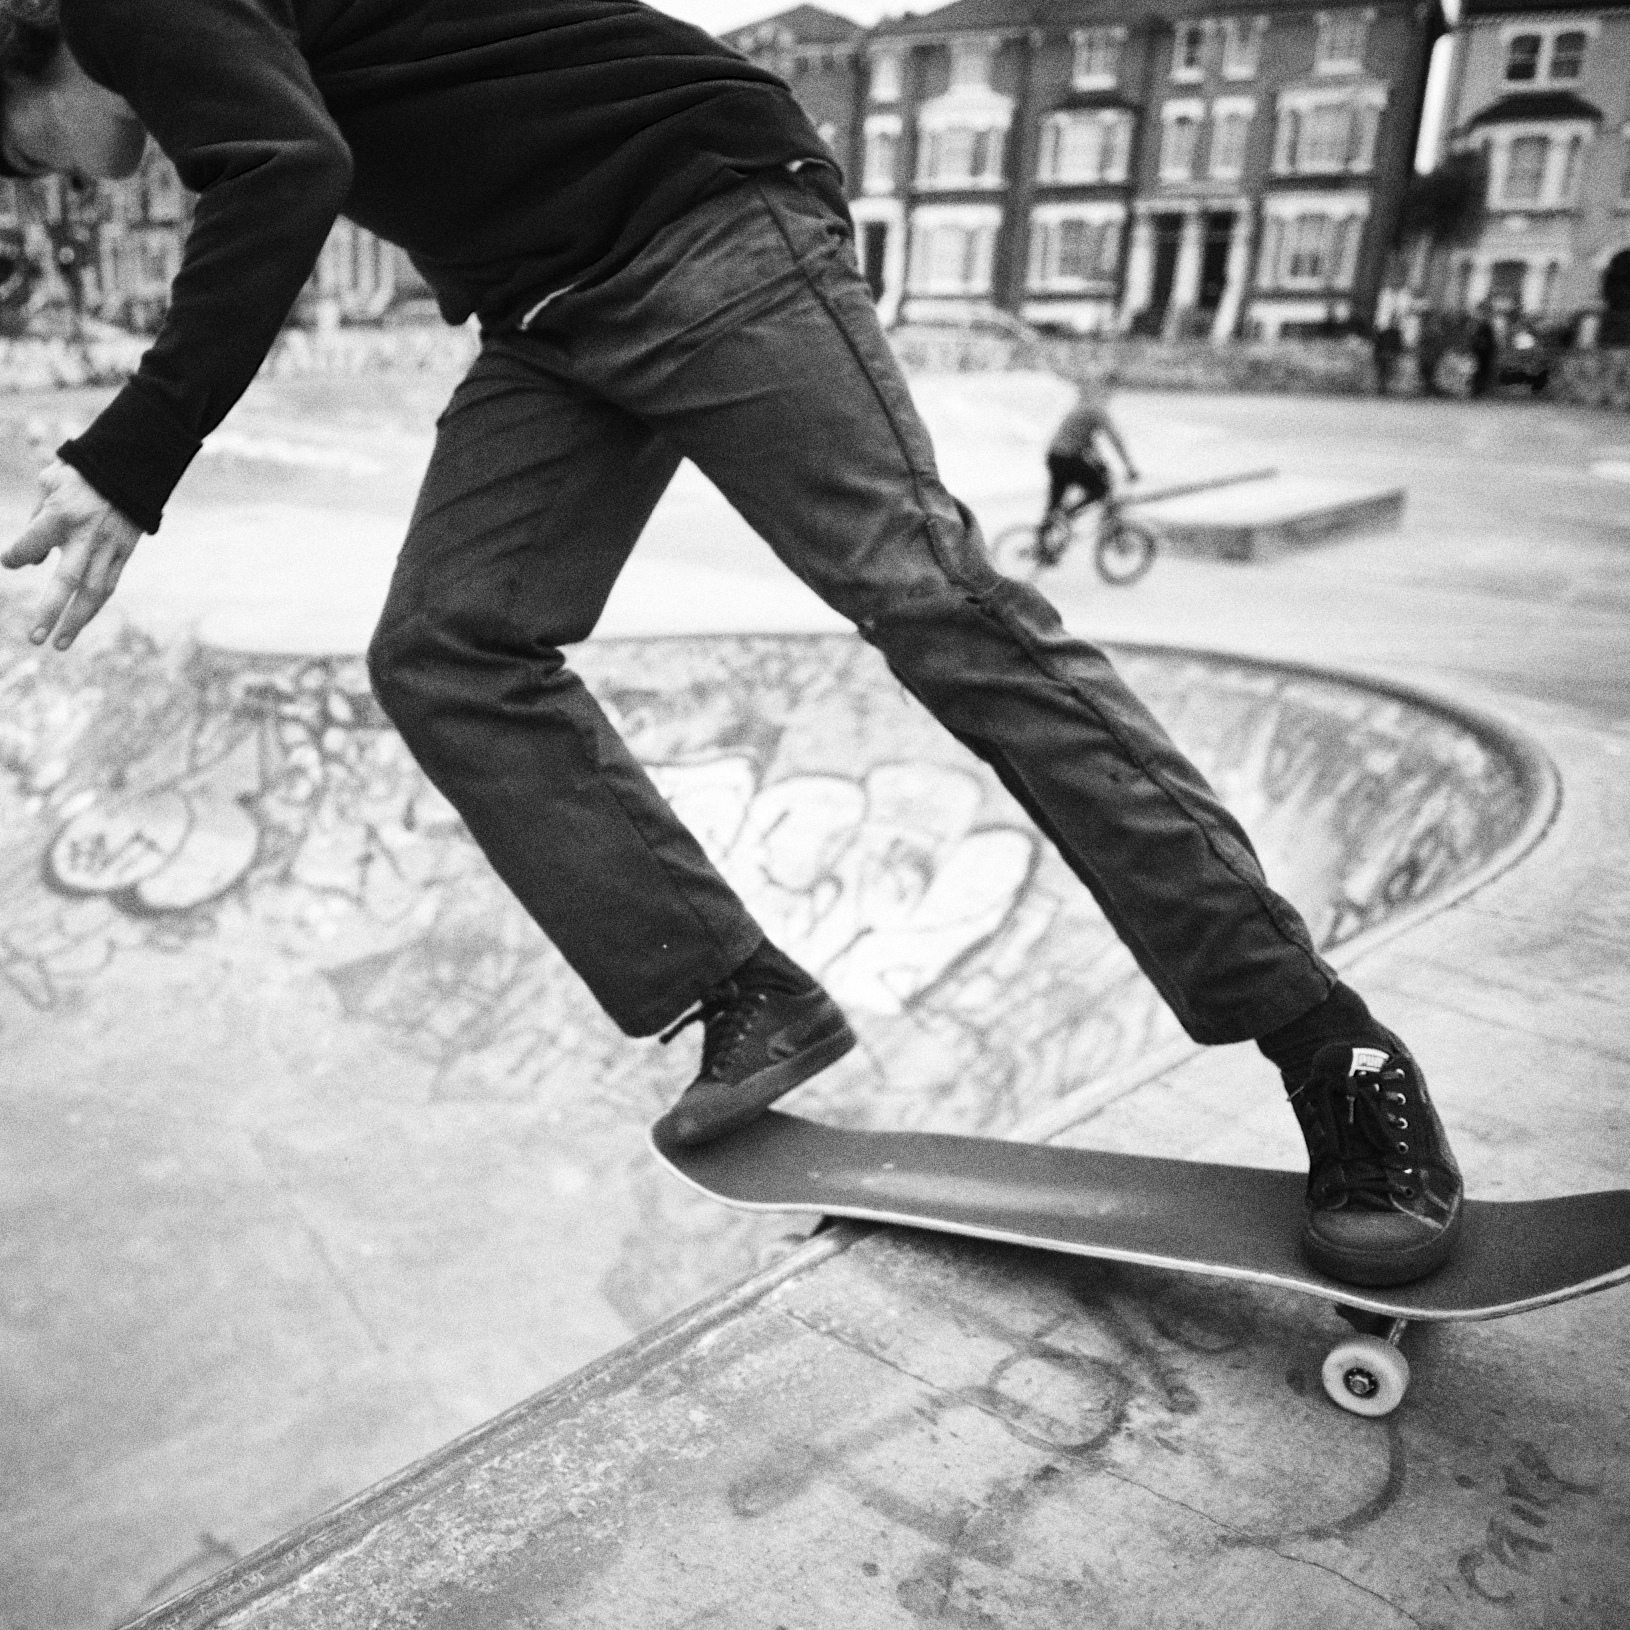 Brixton-skate-park-Matt-Stansfield-Lifestyle-Youth-Culture_11